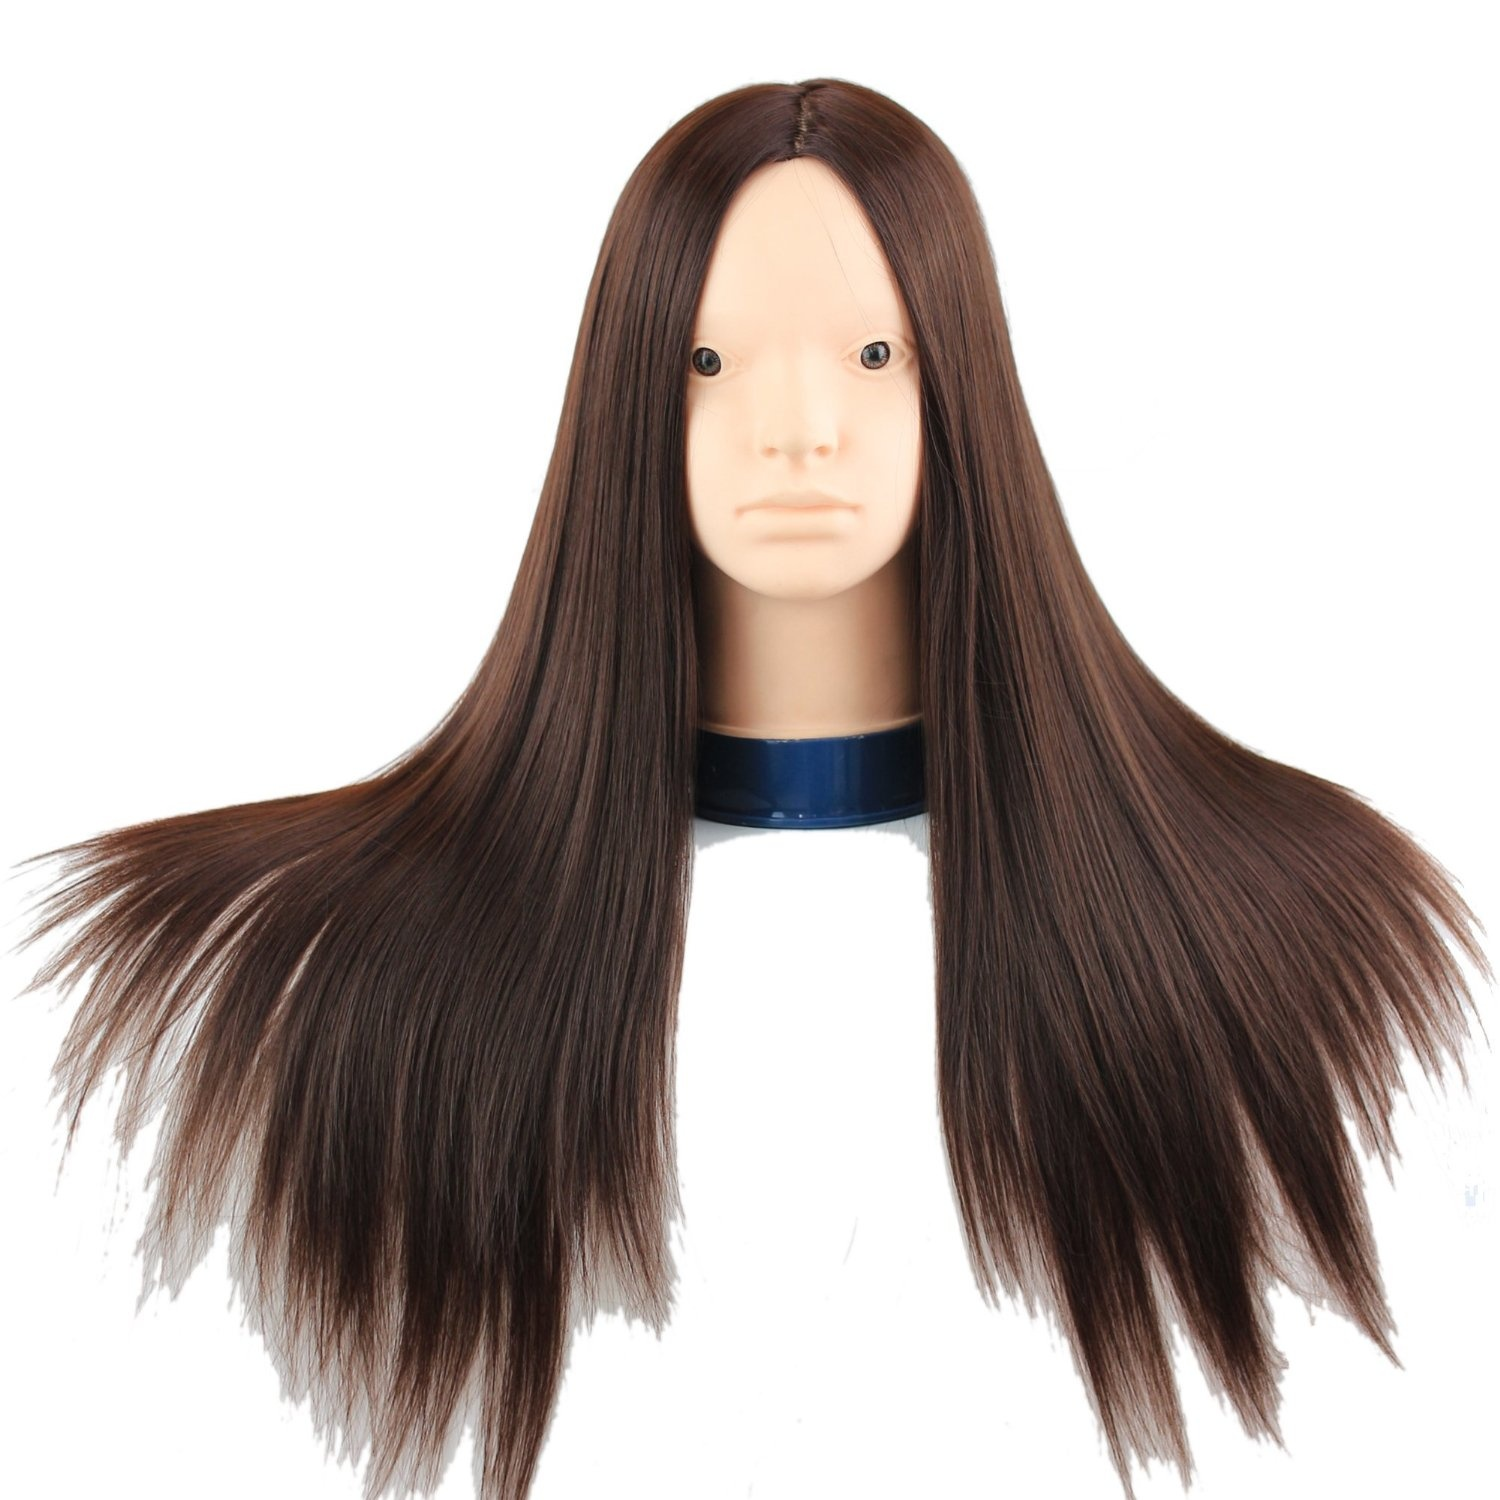 Cosmetology Practice Head With Hair For Hair Styling And